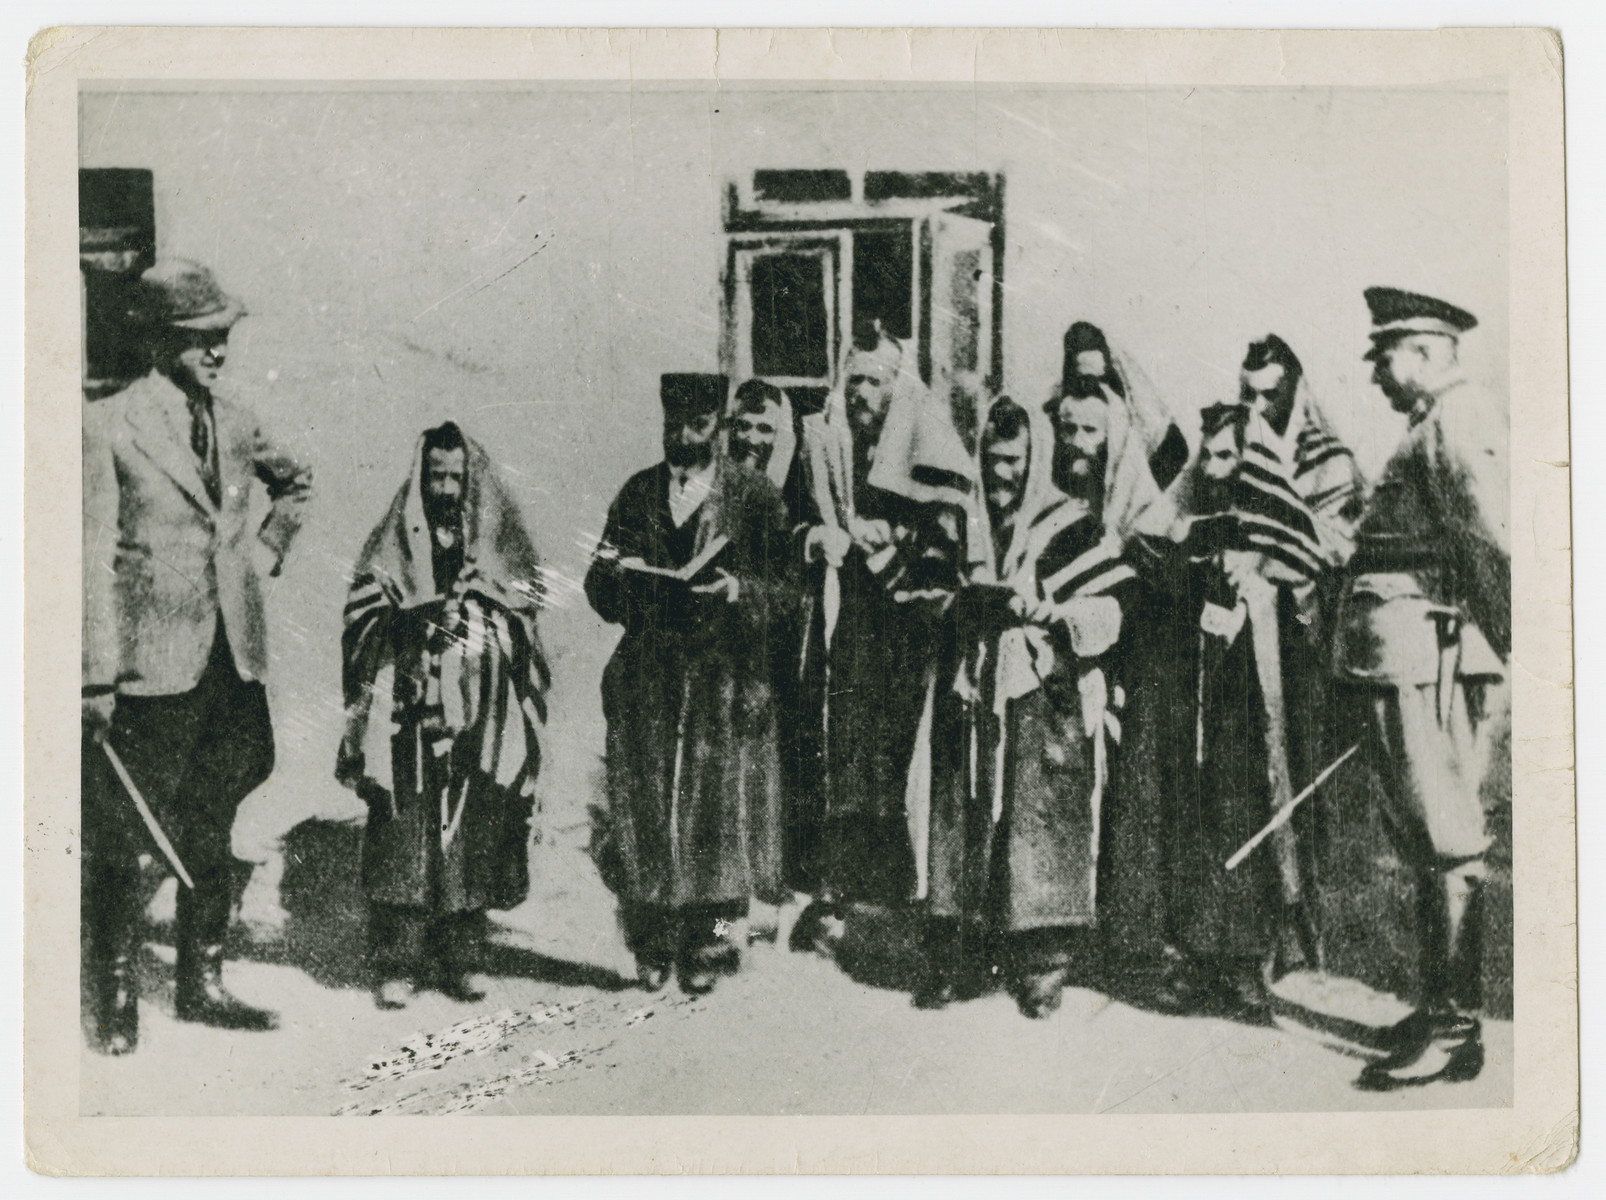 A Nazi soldier and civilian publically humiliate religious Jews by forcing them to pray outside in an unidentified ghetto.